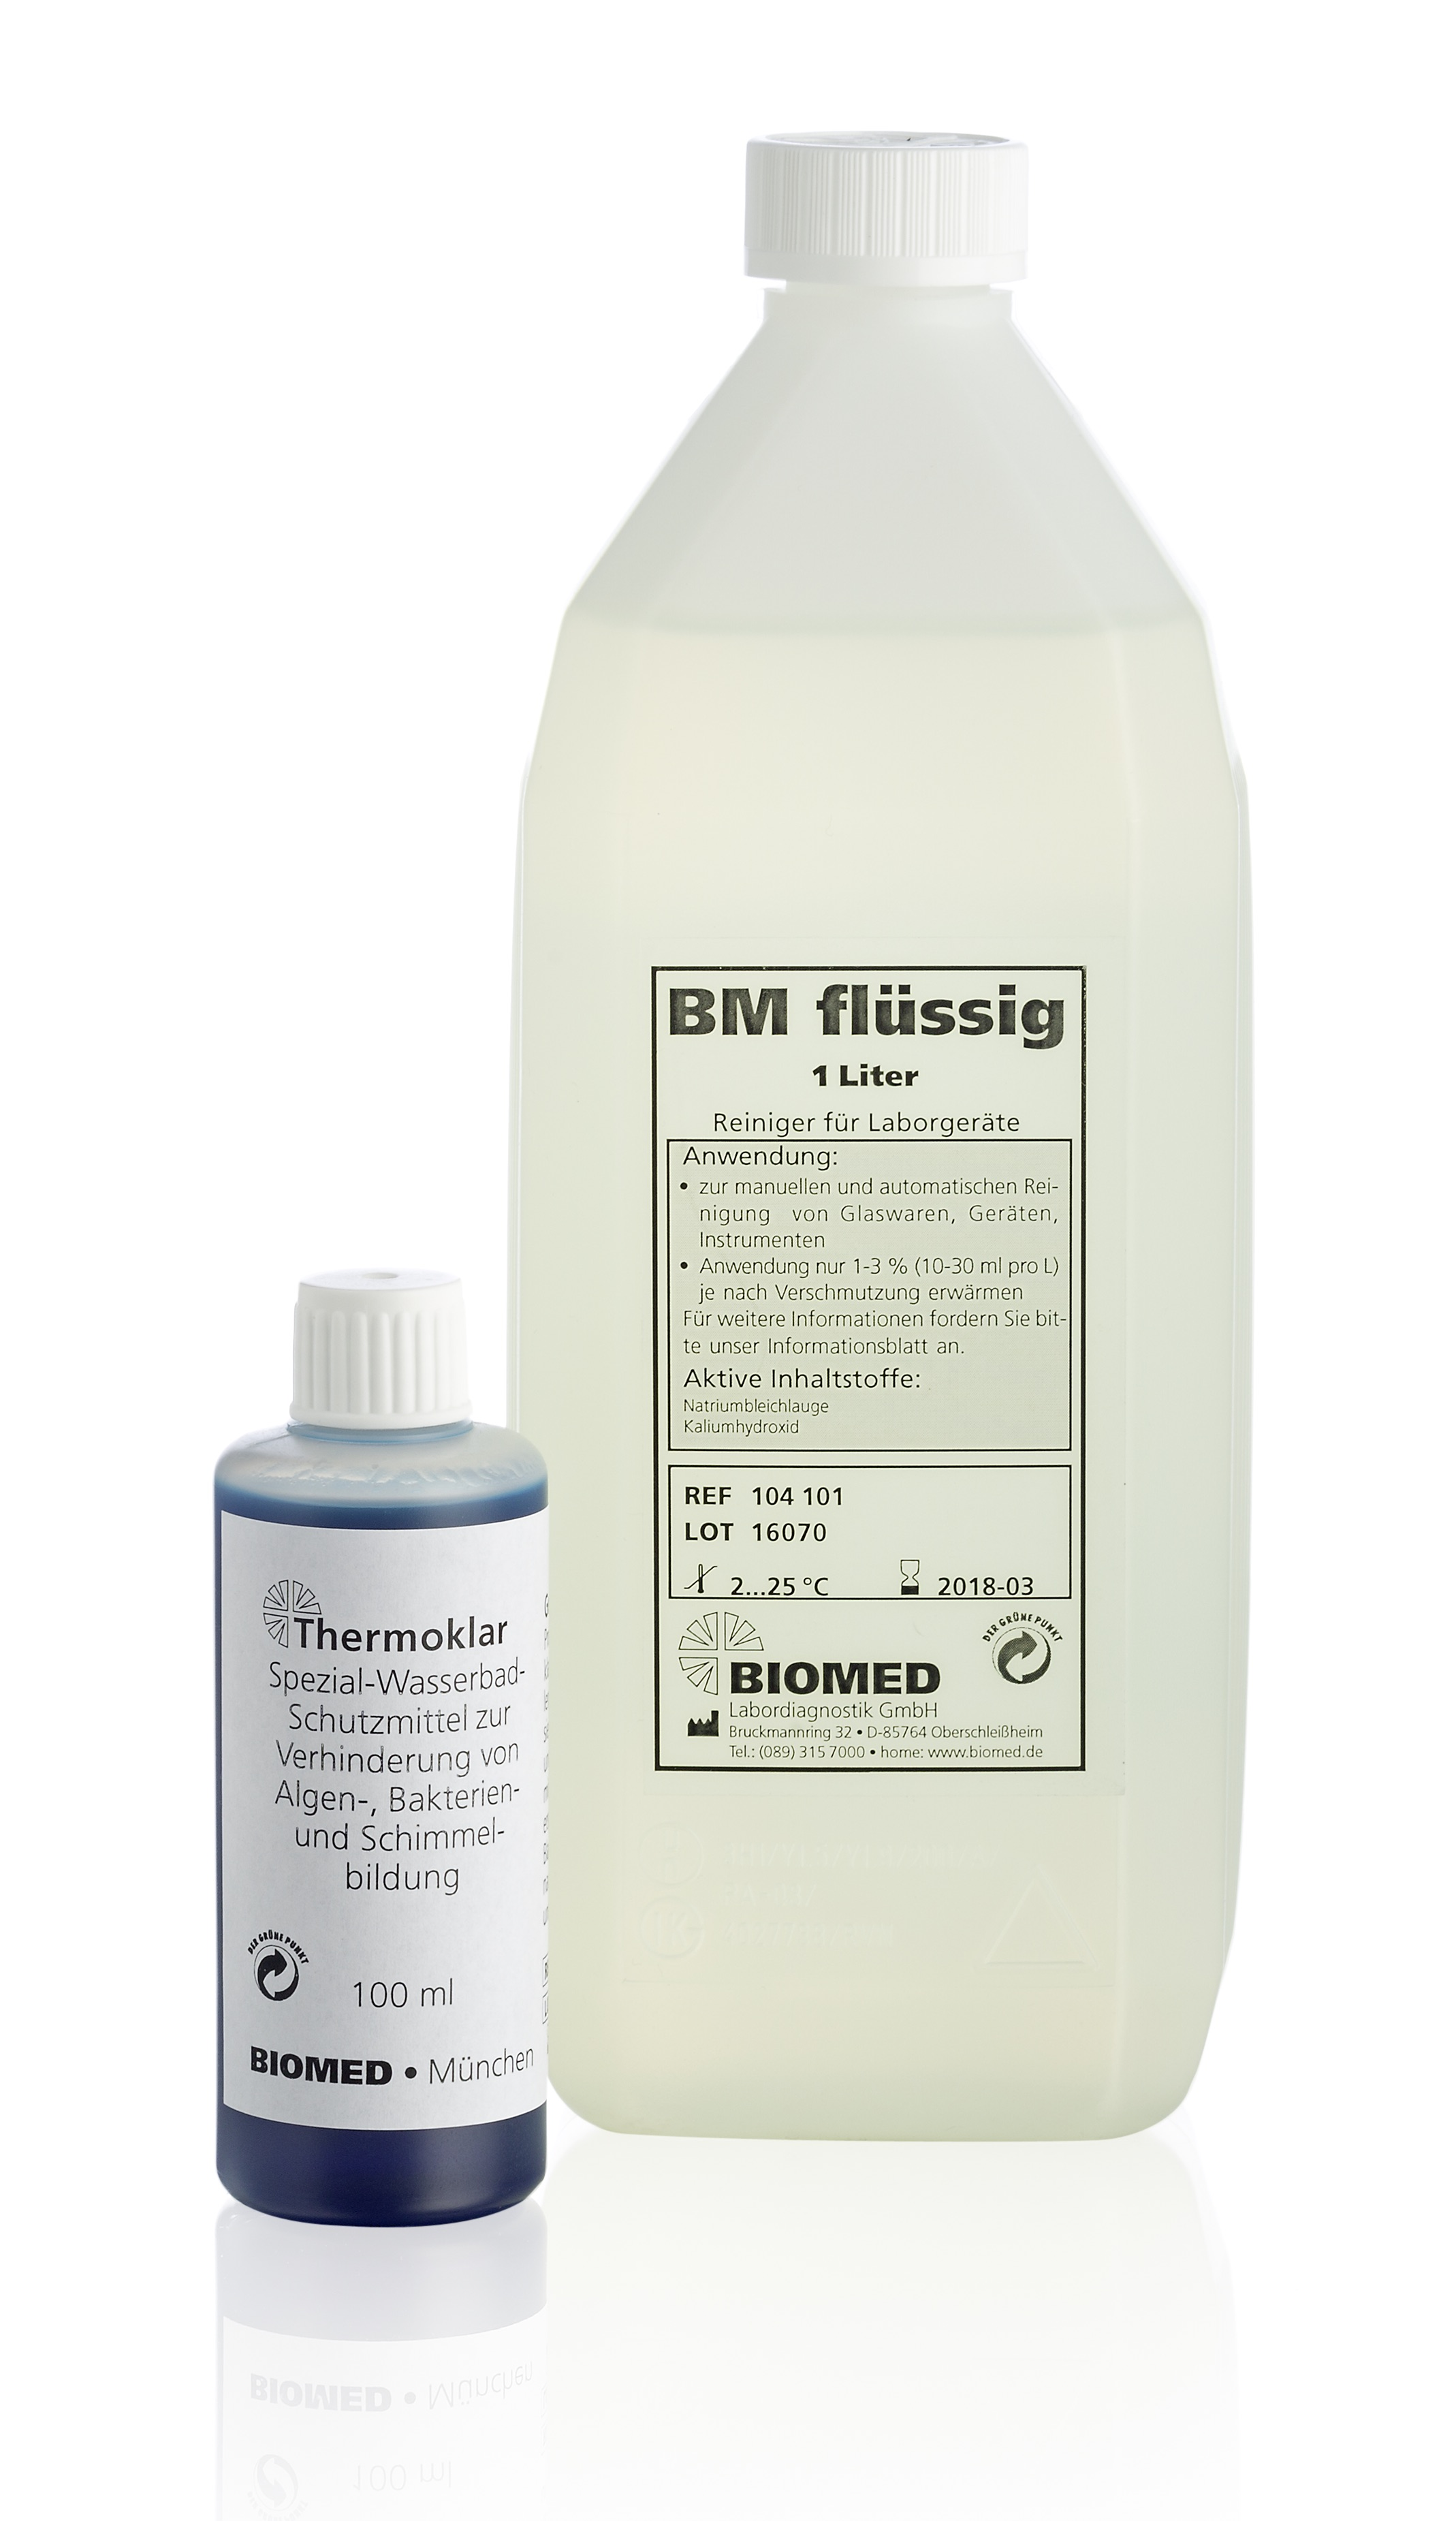 BIOMED Labordiagnostik GmbH: Laborhygiene von BIOMED